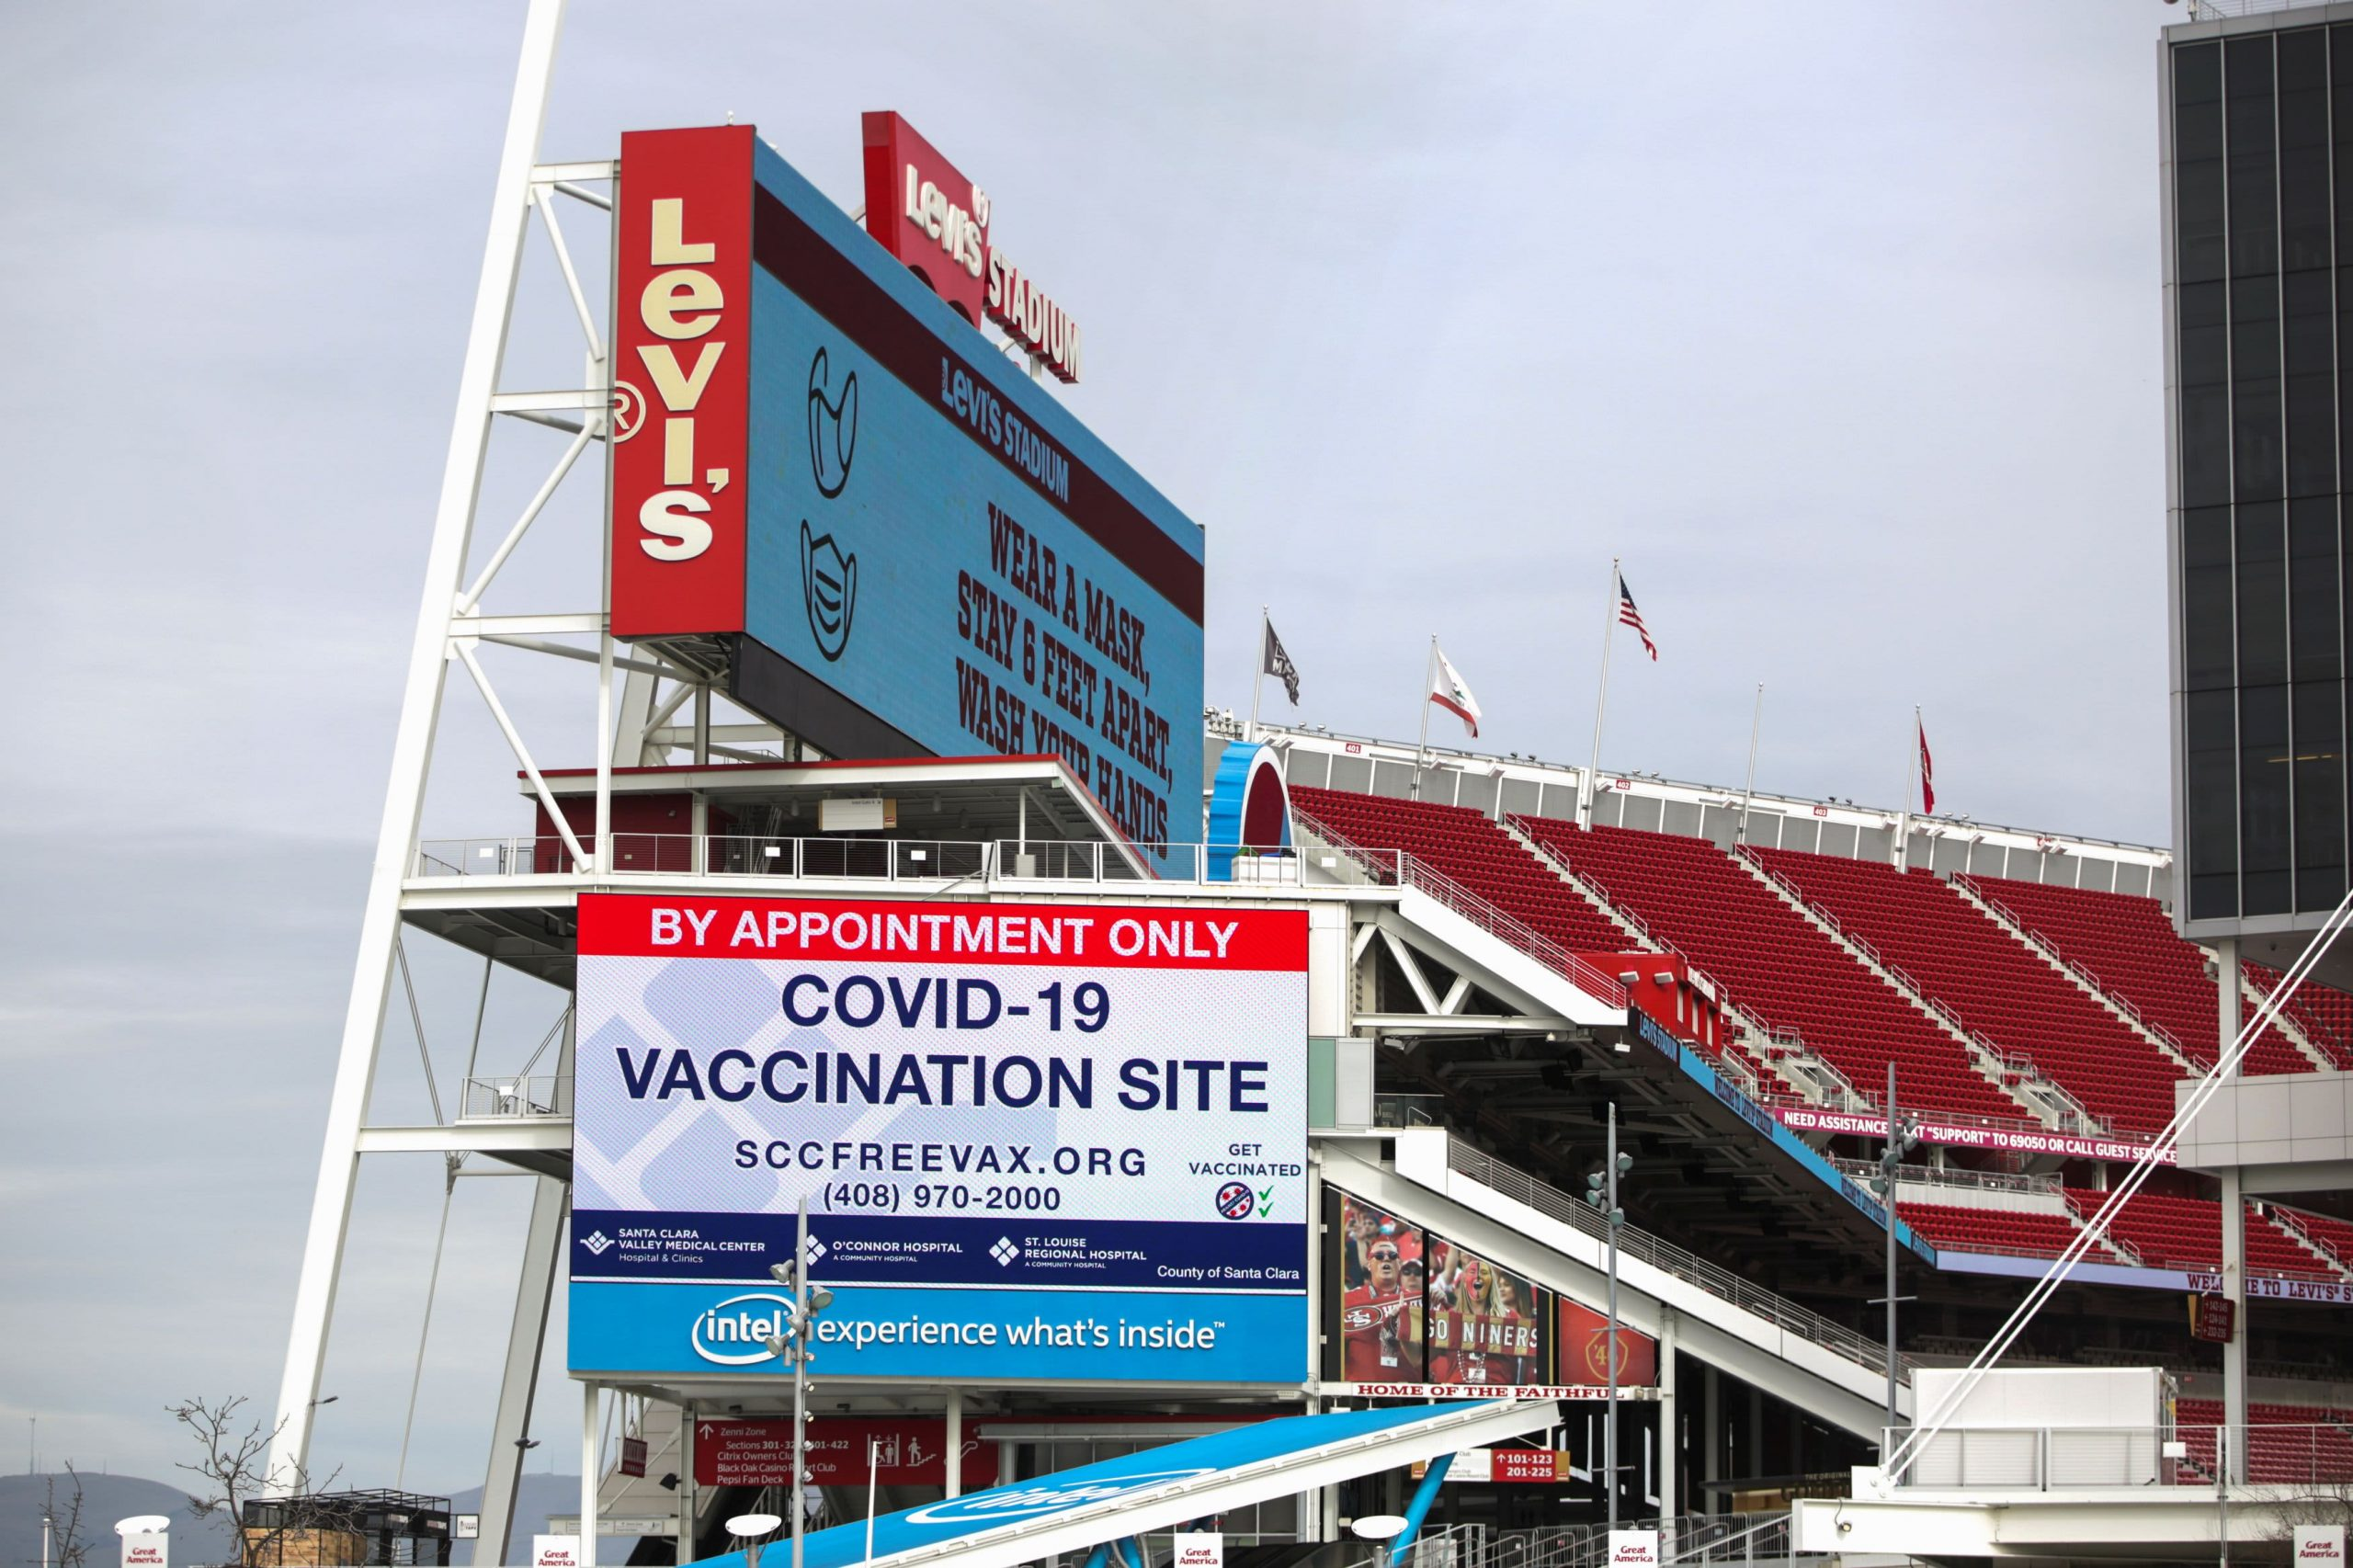 NFL to require vaccinations for employees, with some exceptions